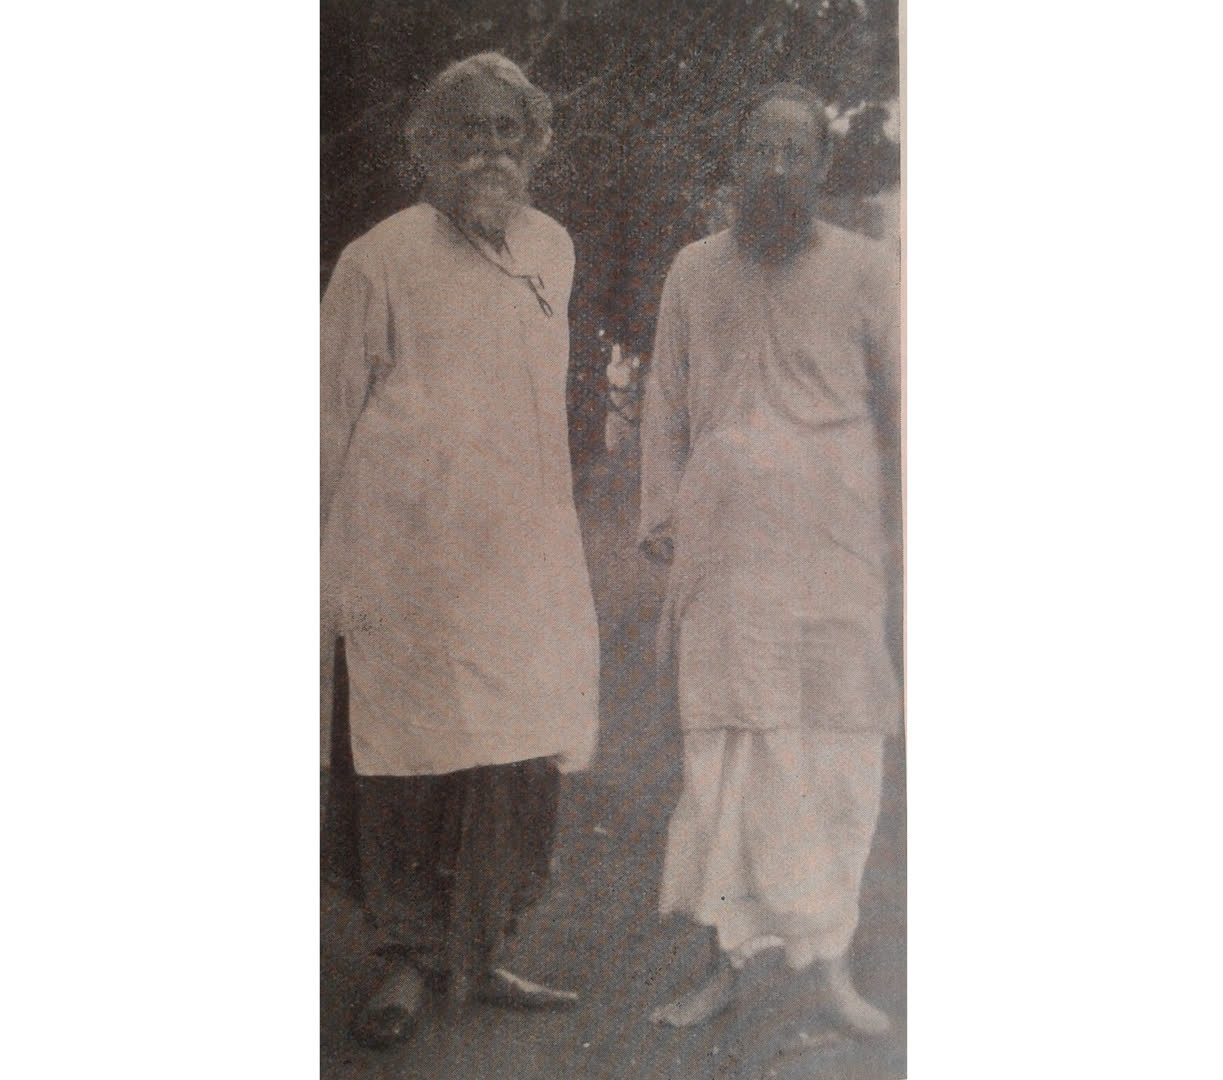 Andrews in a dhoti (right)